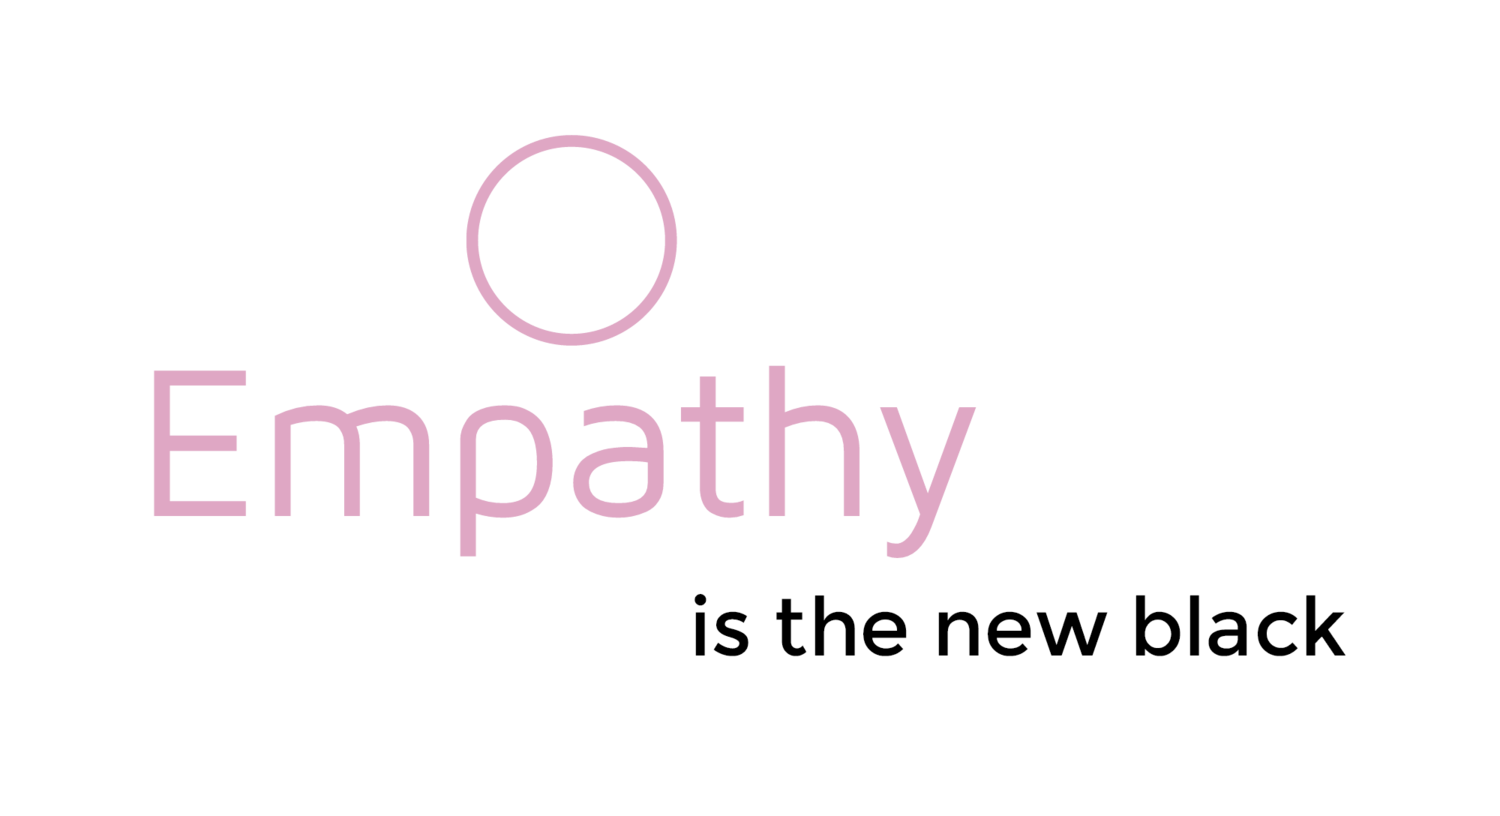 Empathy is the new black